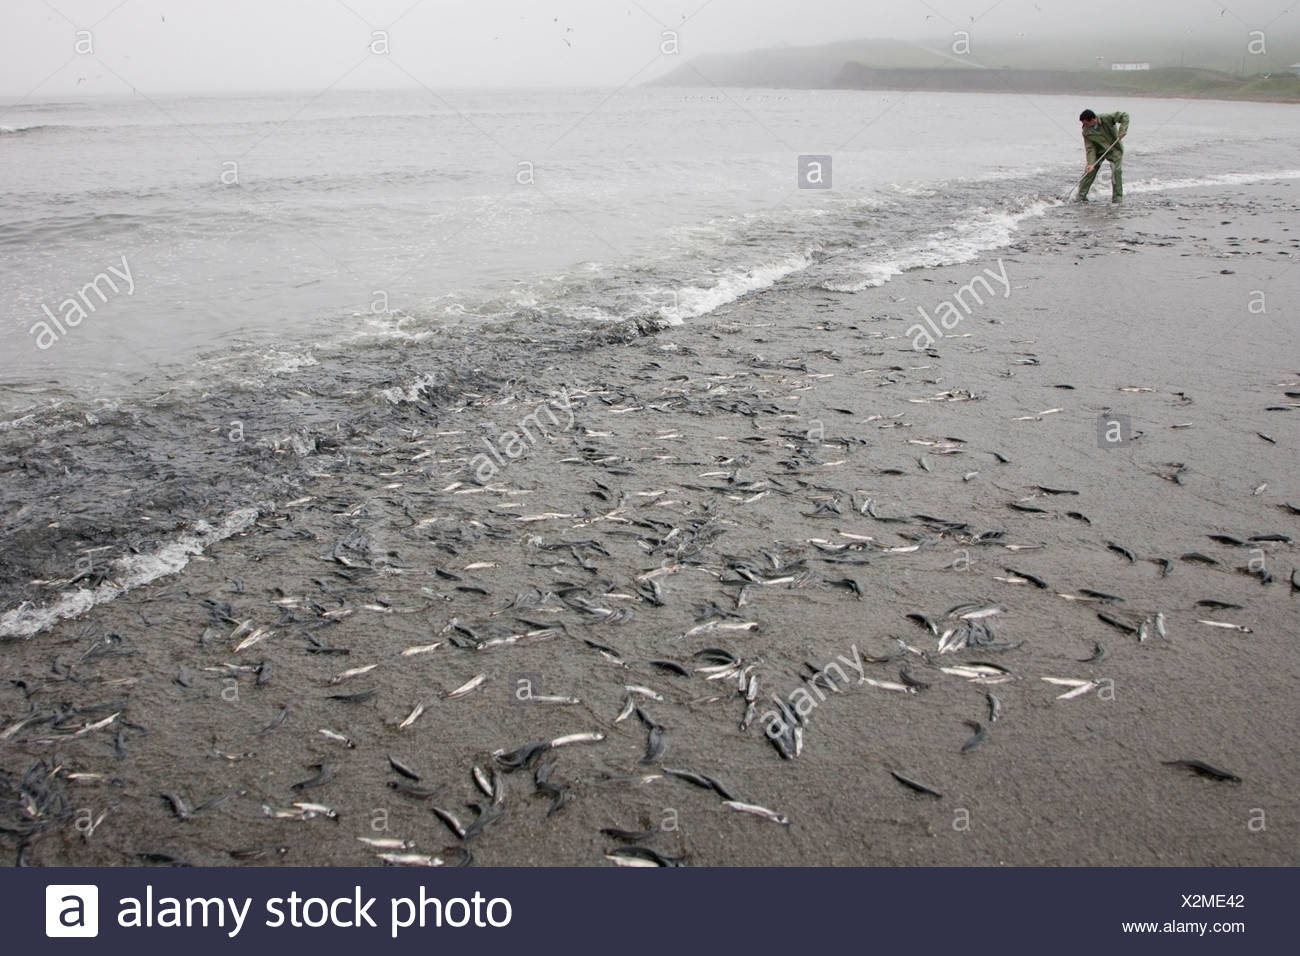 Capelin (Mallotus villosus) rolling up onto the beach to spawn, Branch, Newfoundland, Canada - Stock Image